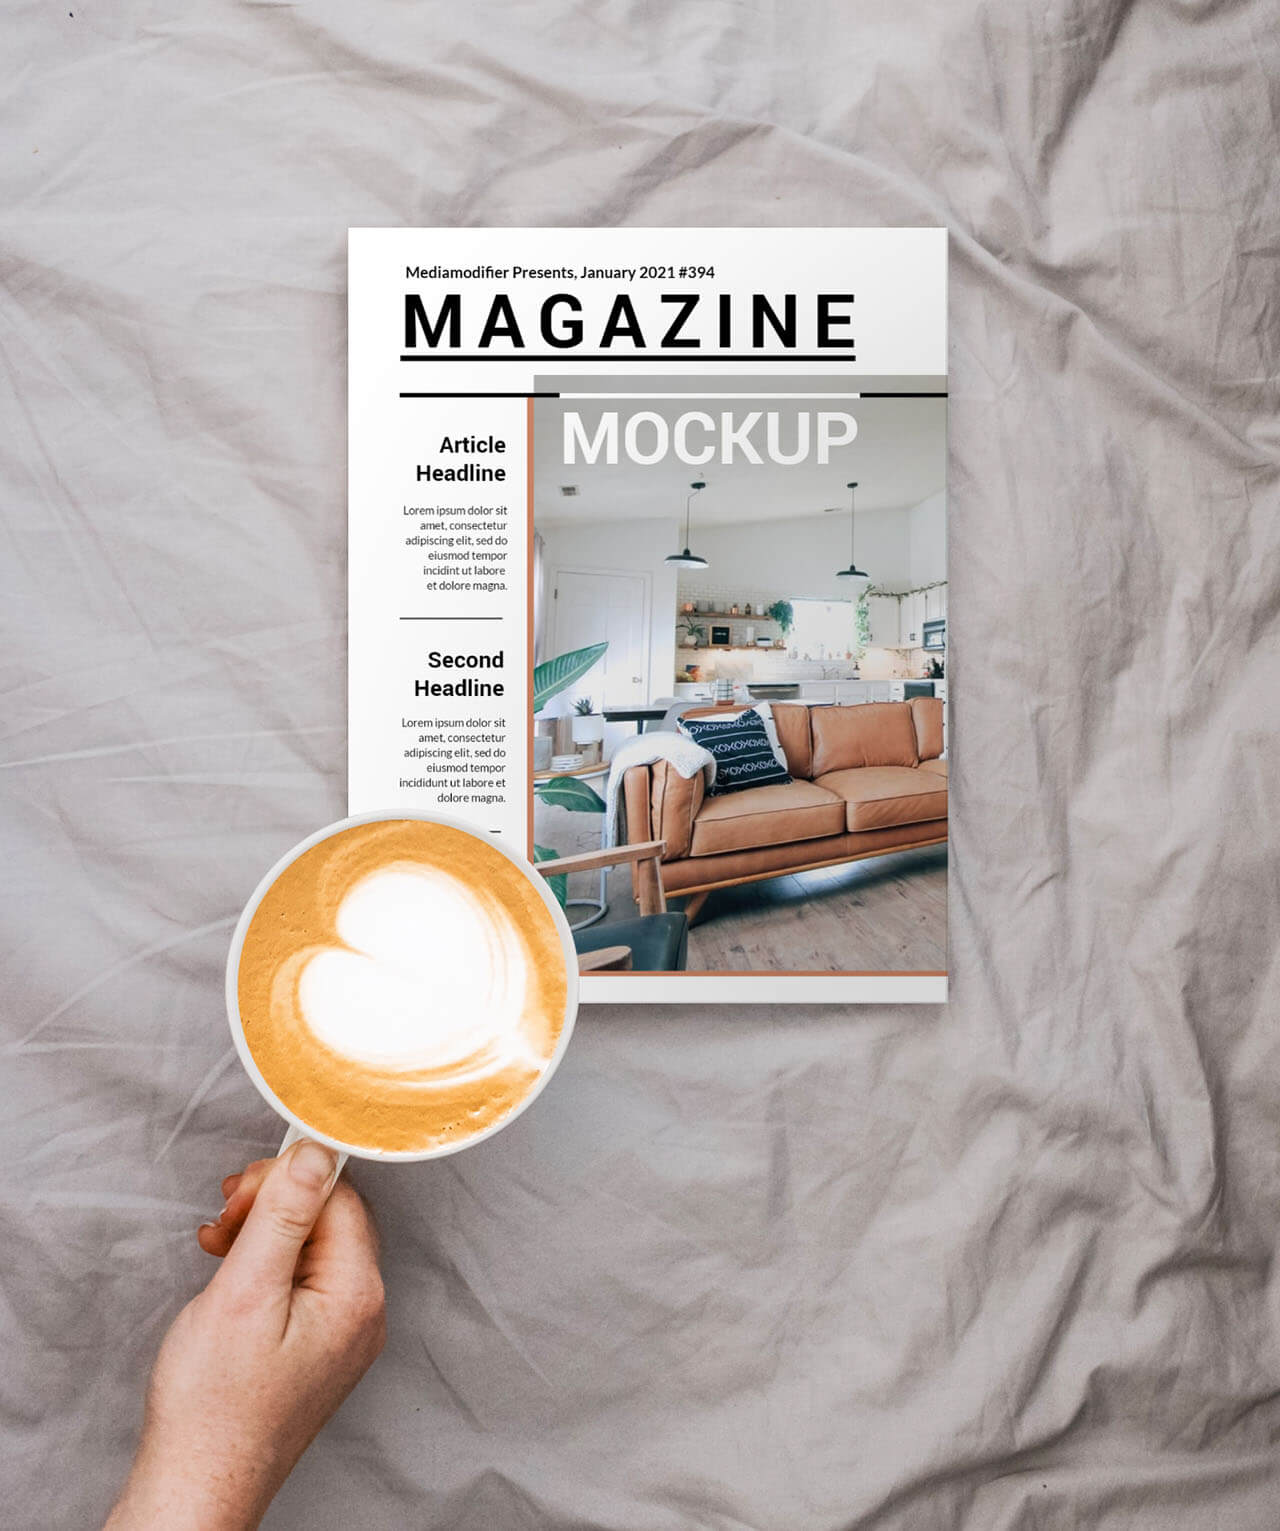 Diseño de revistas: 29-magazine-cover-on-bed-mockup-photoshop